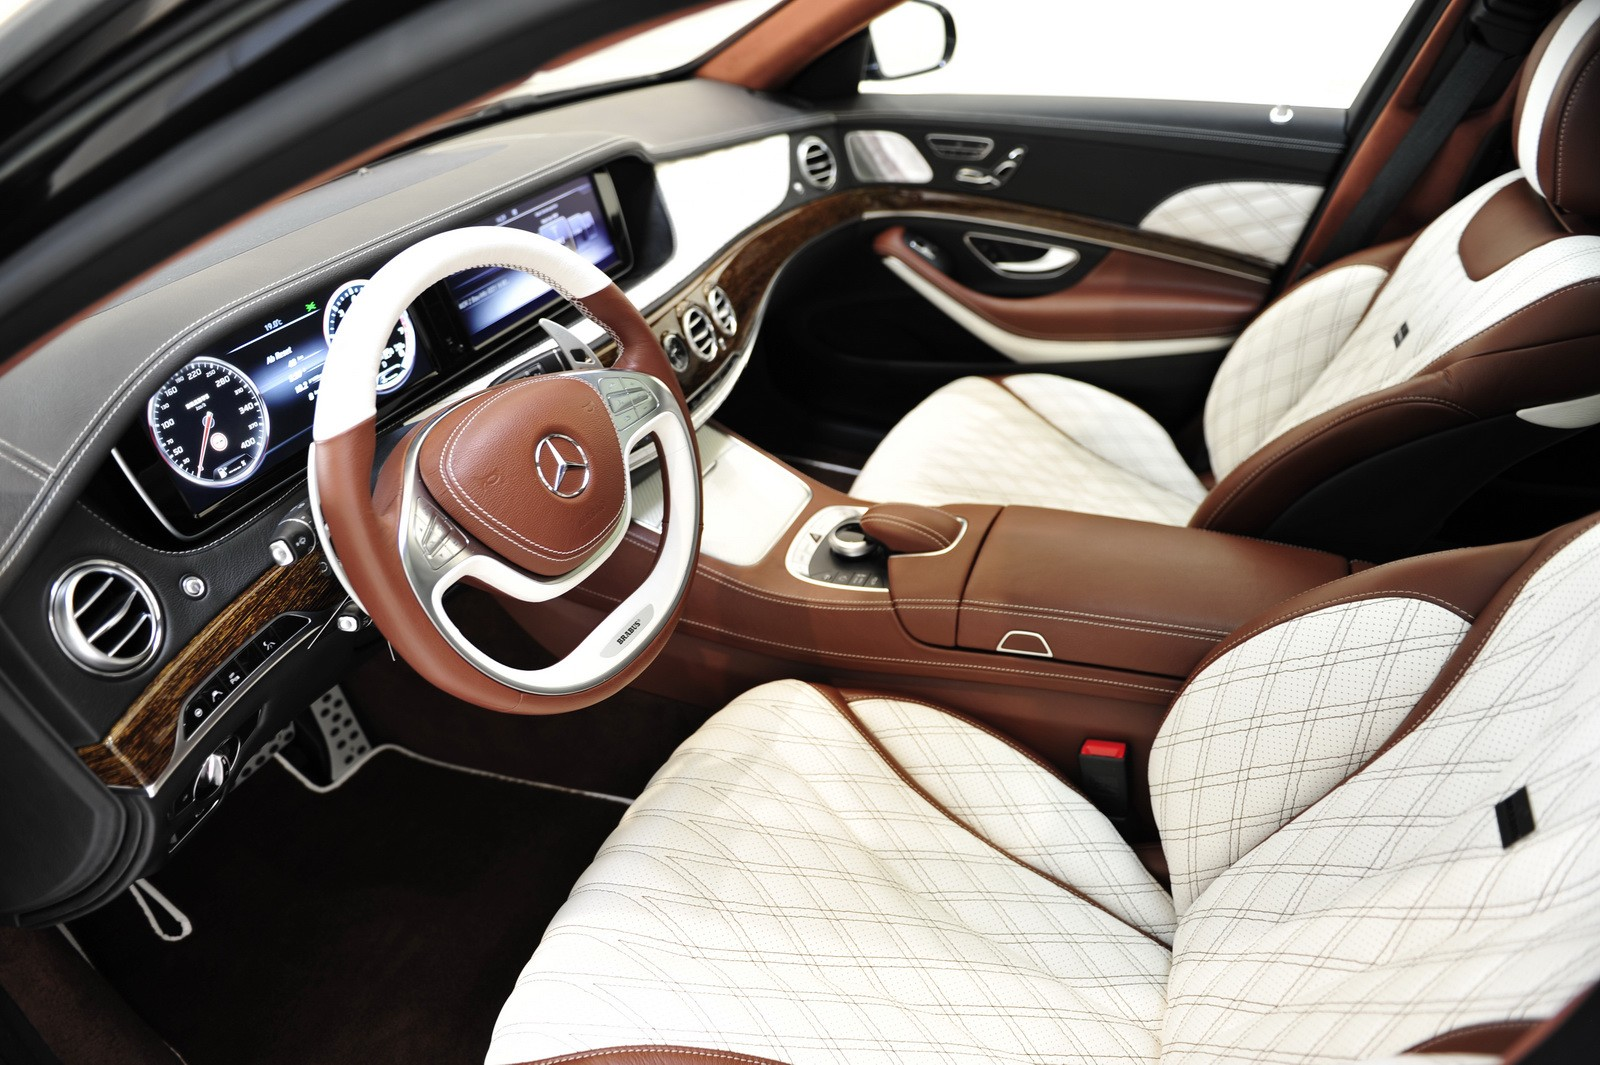 brabus throws 900 hp into the mercedes maybach s600 casts opulent interior autoevolution. Black Bedroom Furniture Sets. Home Design Ideas